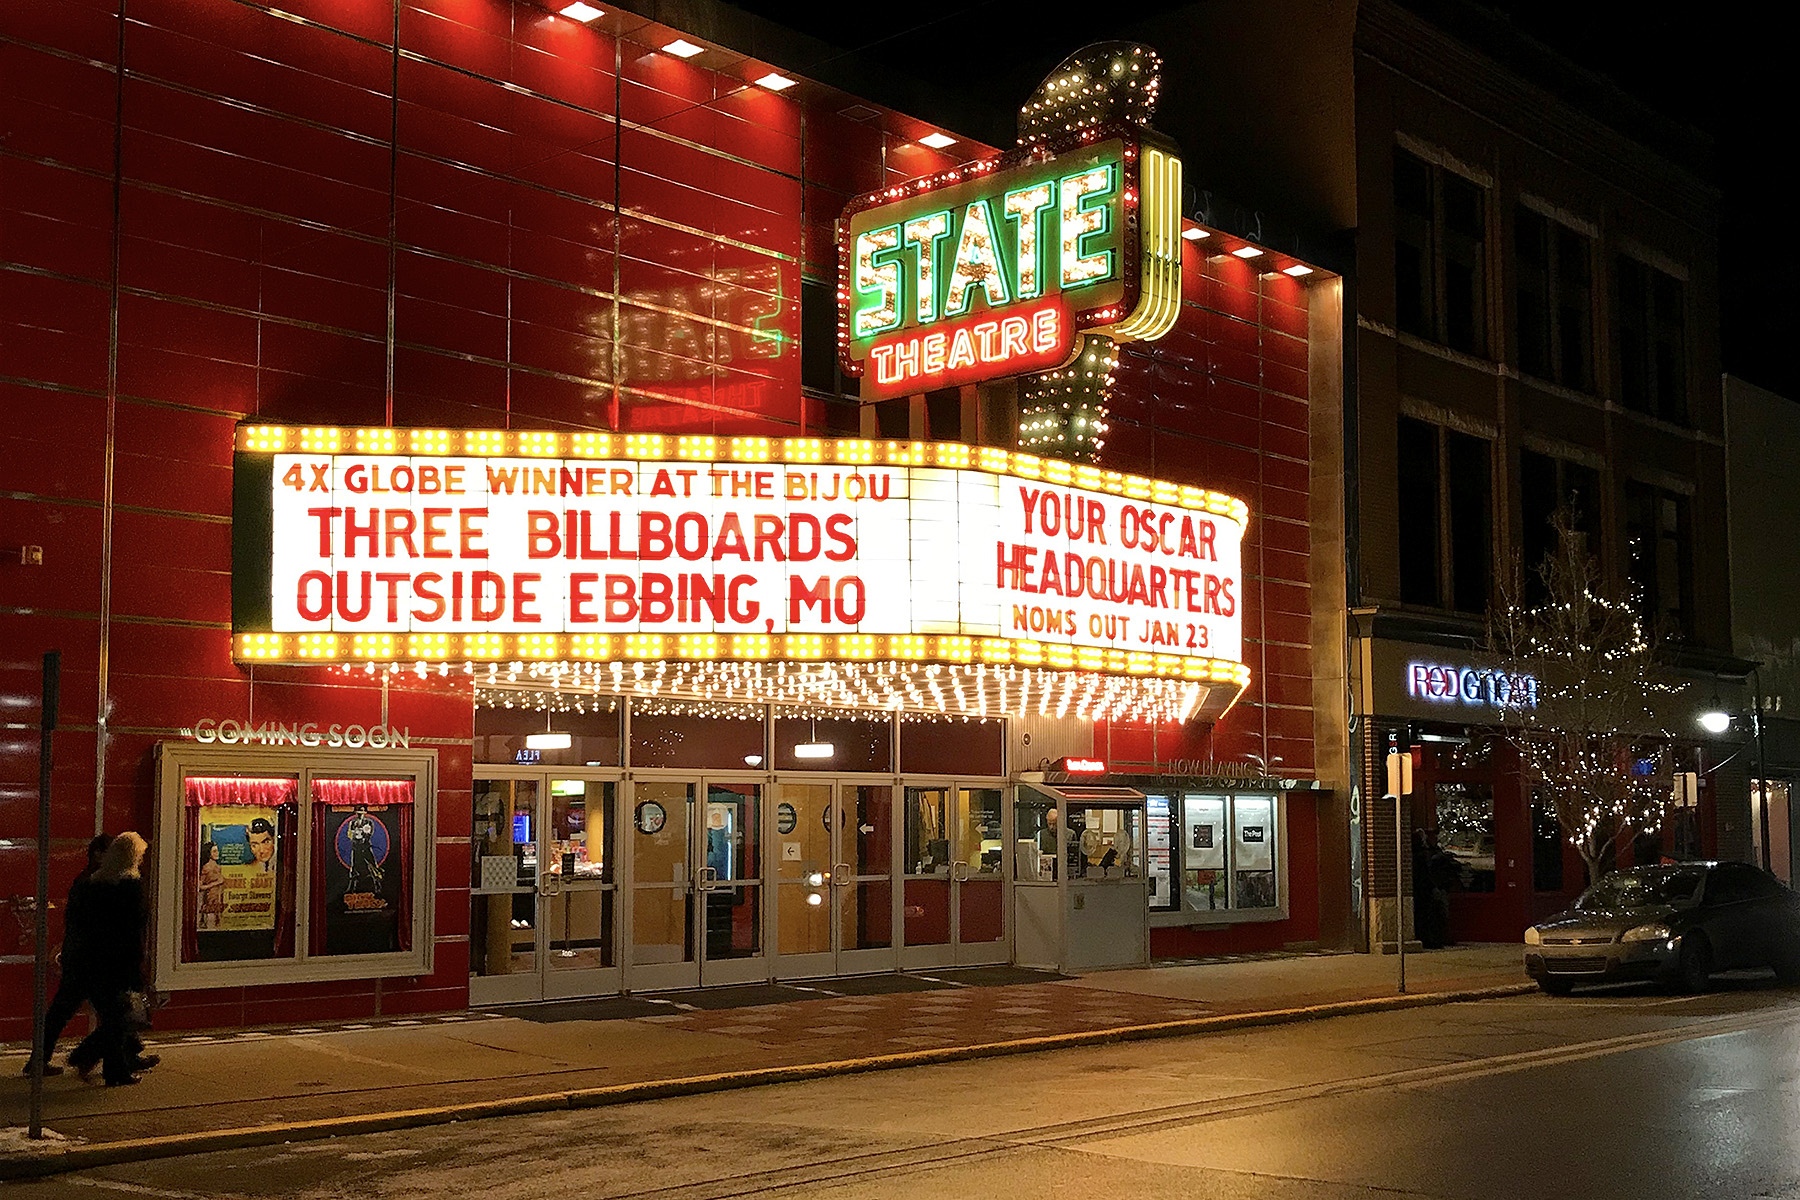 The State Theatre in Traverse City, Michigan